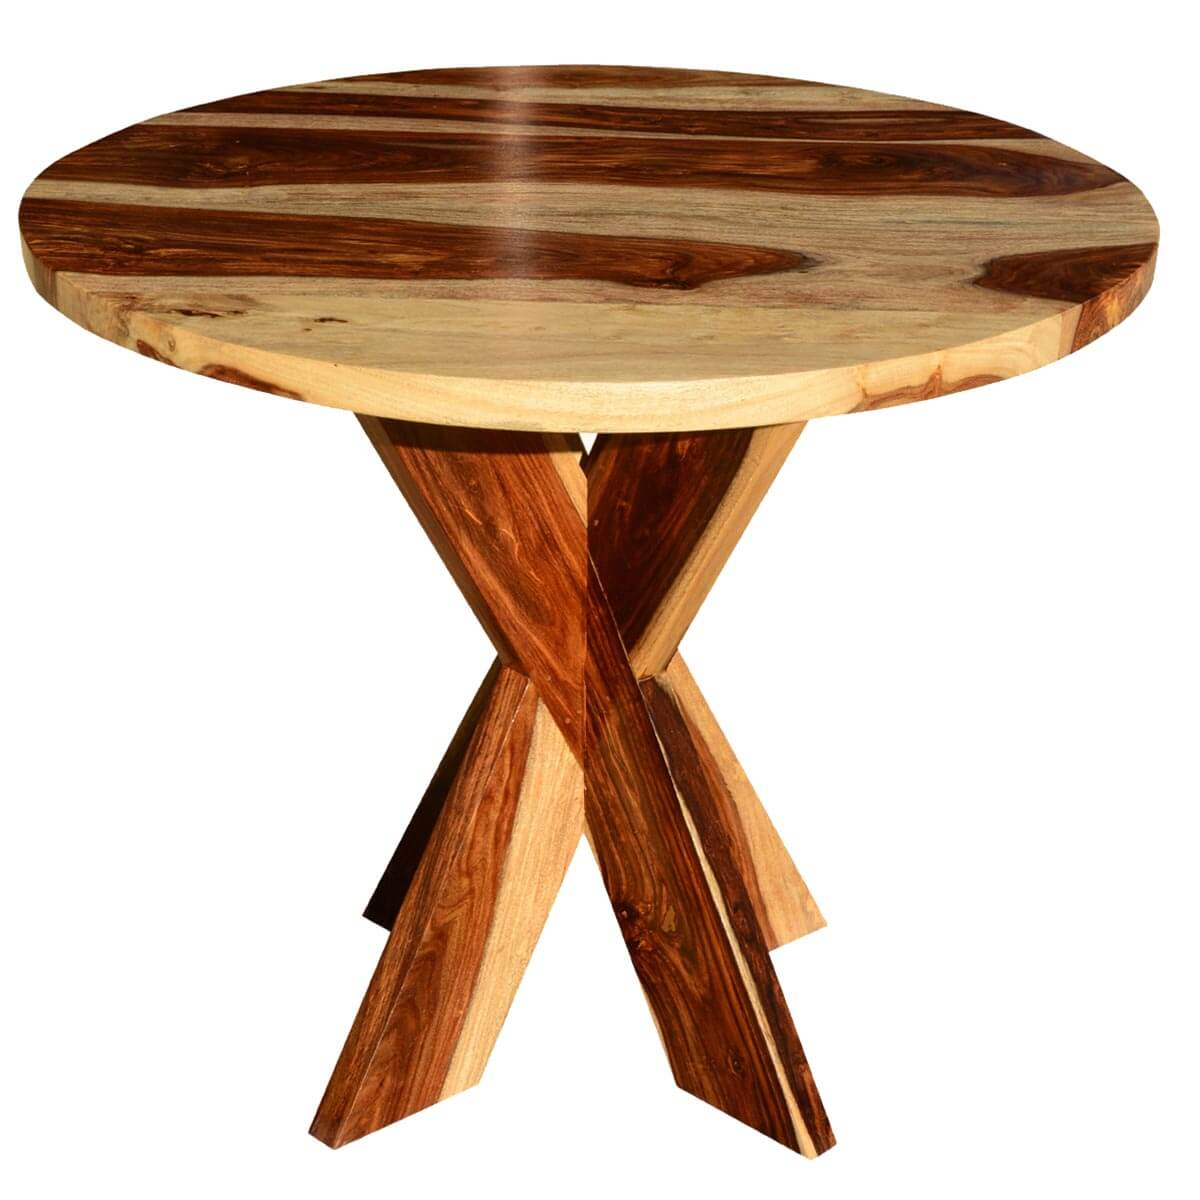 dallas solid wood x pedestal round dining table. Black Bedroom Furniture Sets. Home Design Ideas